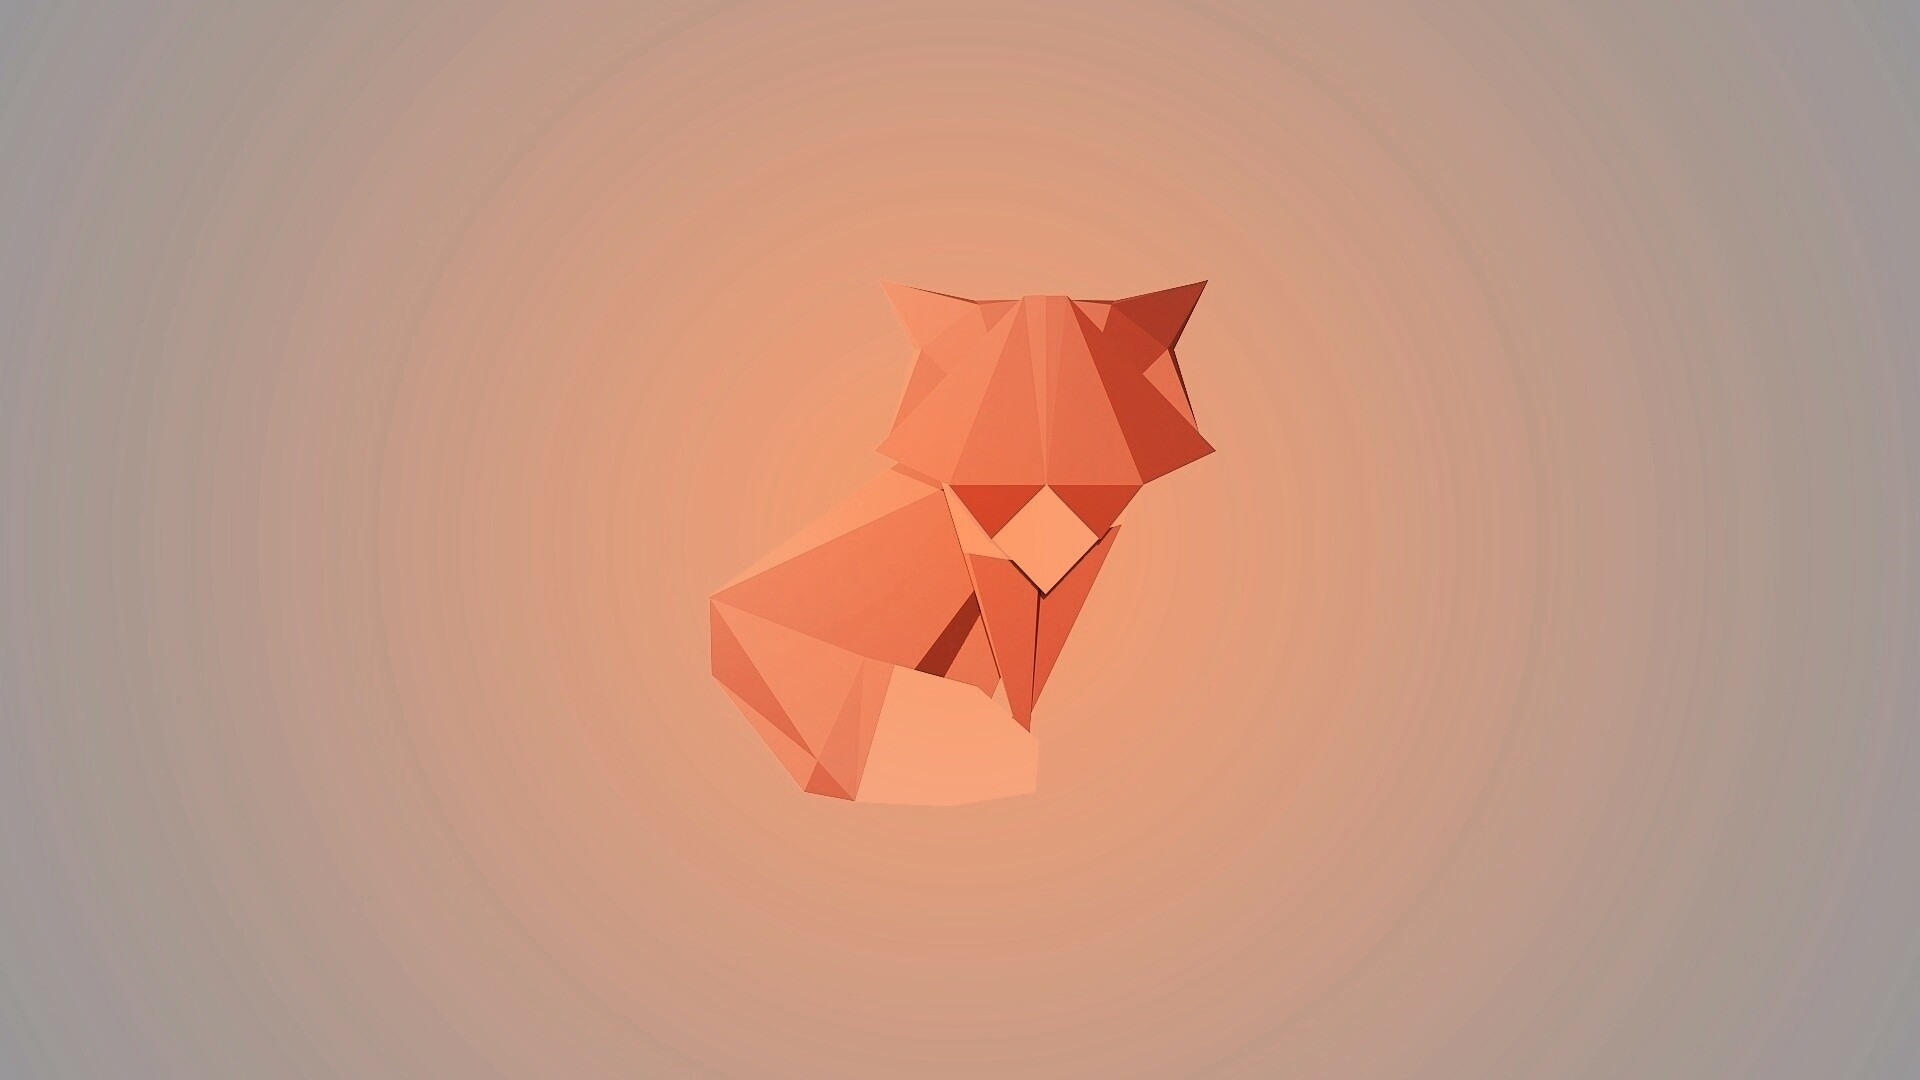 Cute Origami wallpaper photo hd